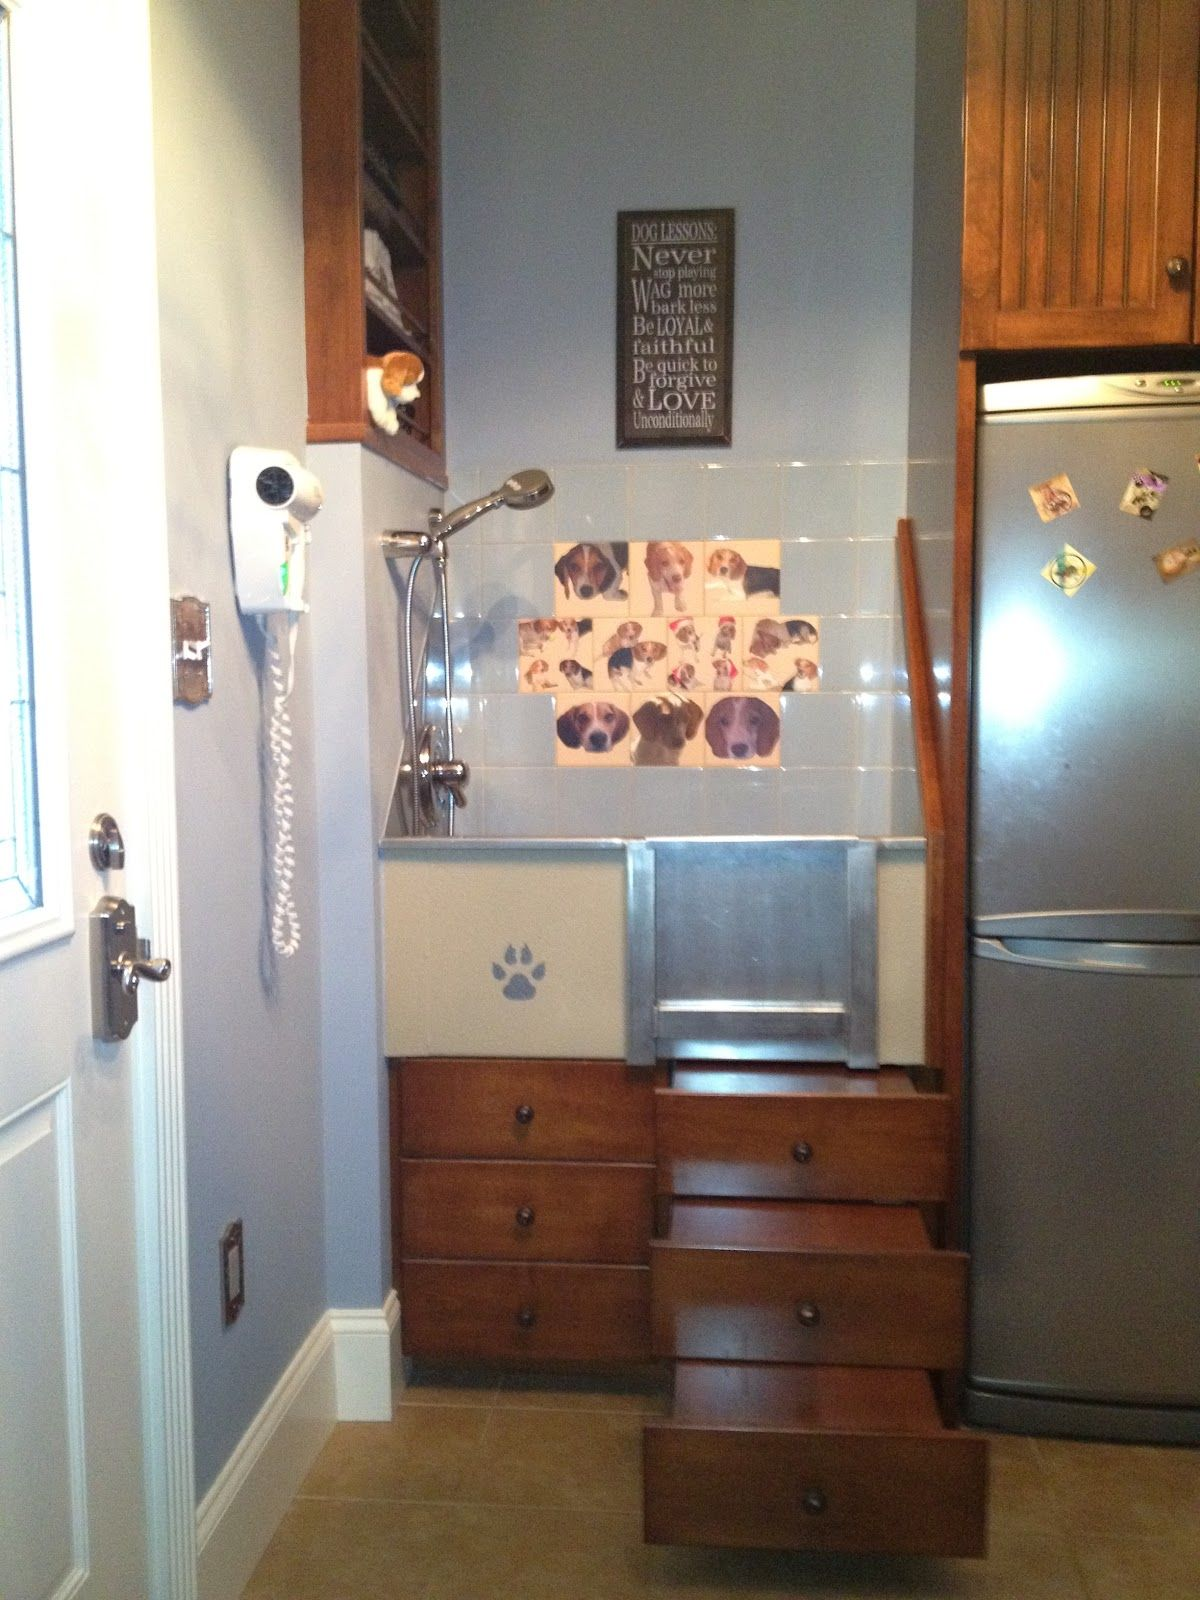 Rooms For Dogs Stone Pond House Dog Room  Dogs And Stuff  Pinterest  Dog